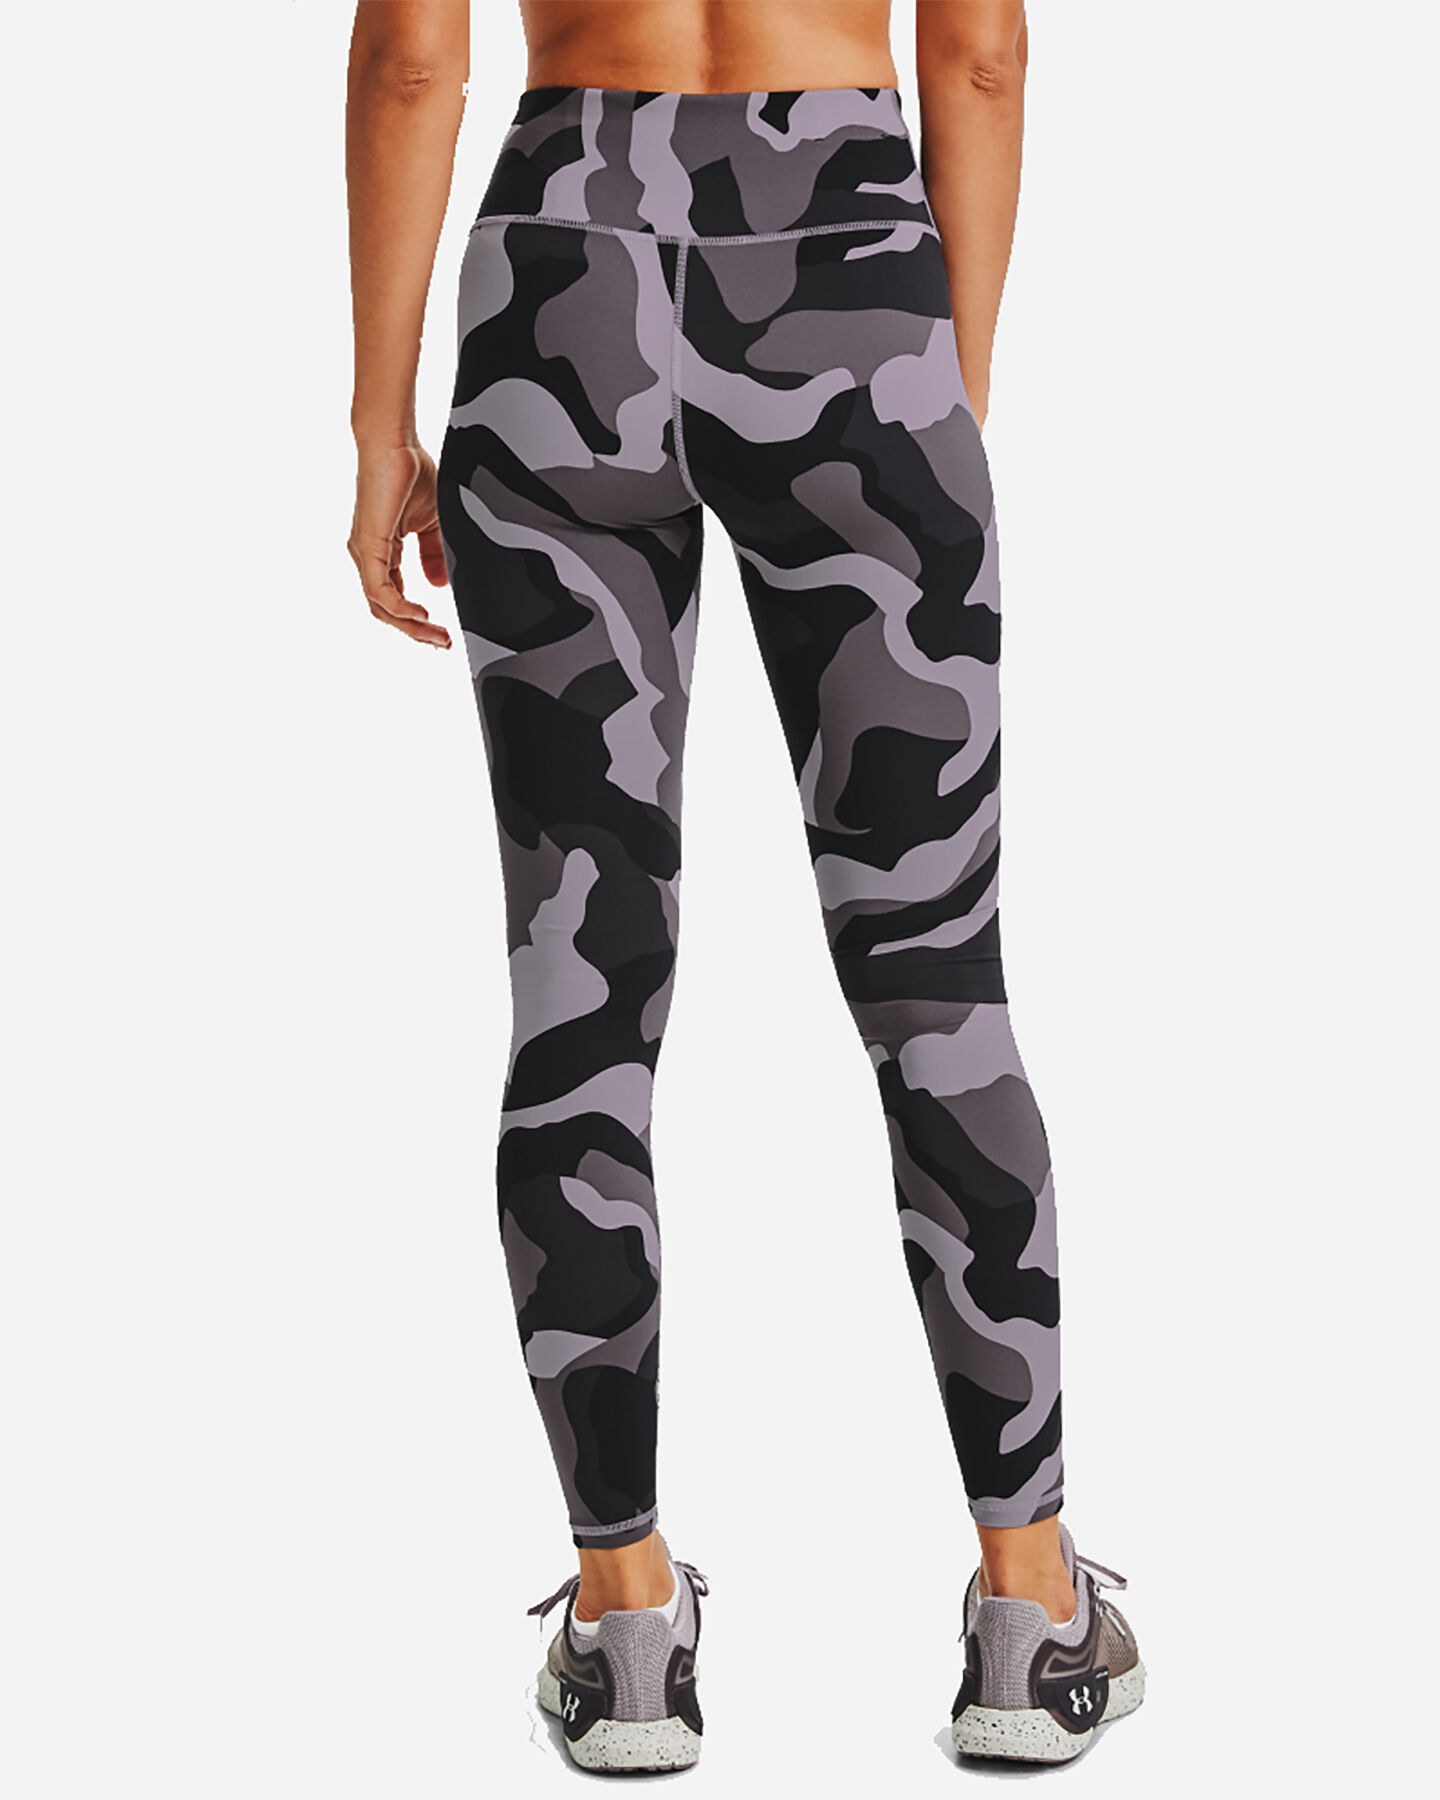 Leggings UNDER ARMOUR CAMOU RUSH W S5229989 scatto 1